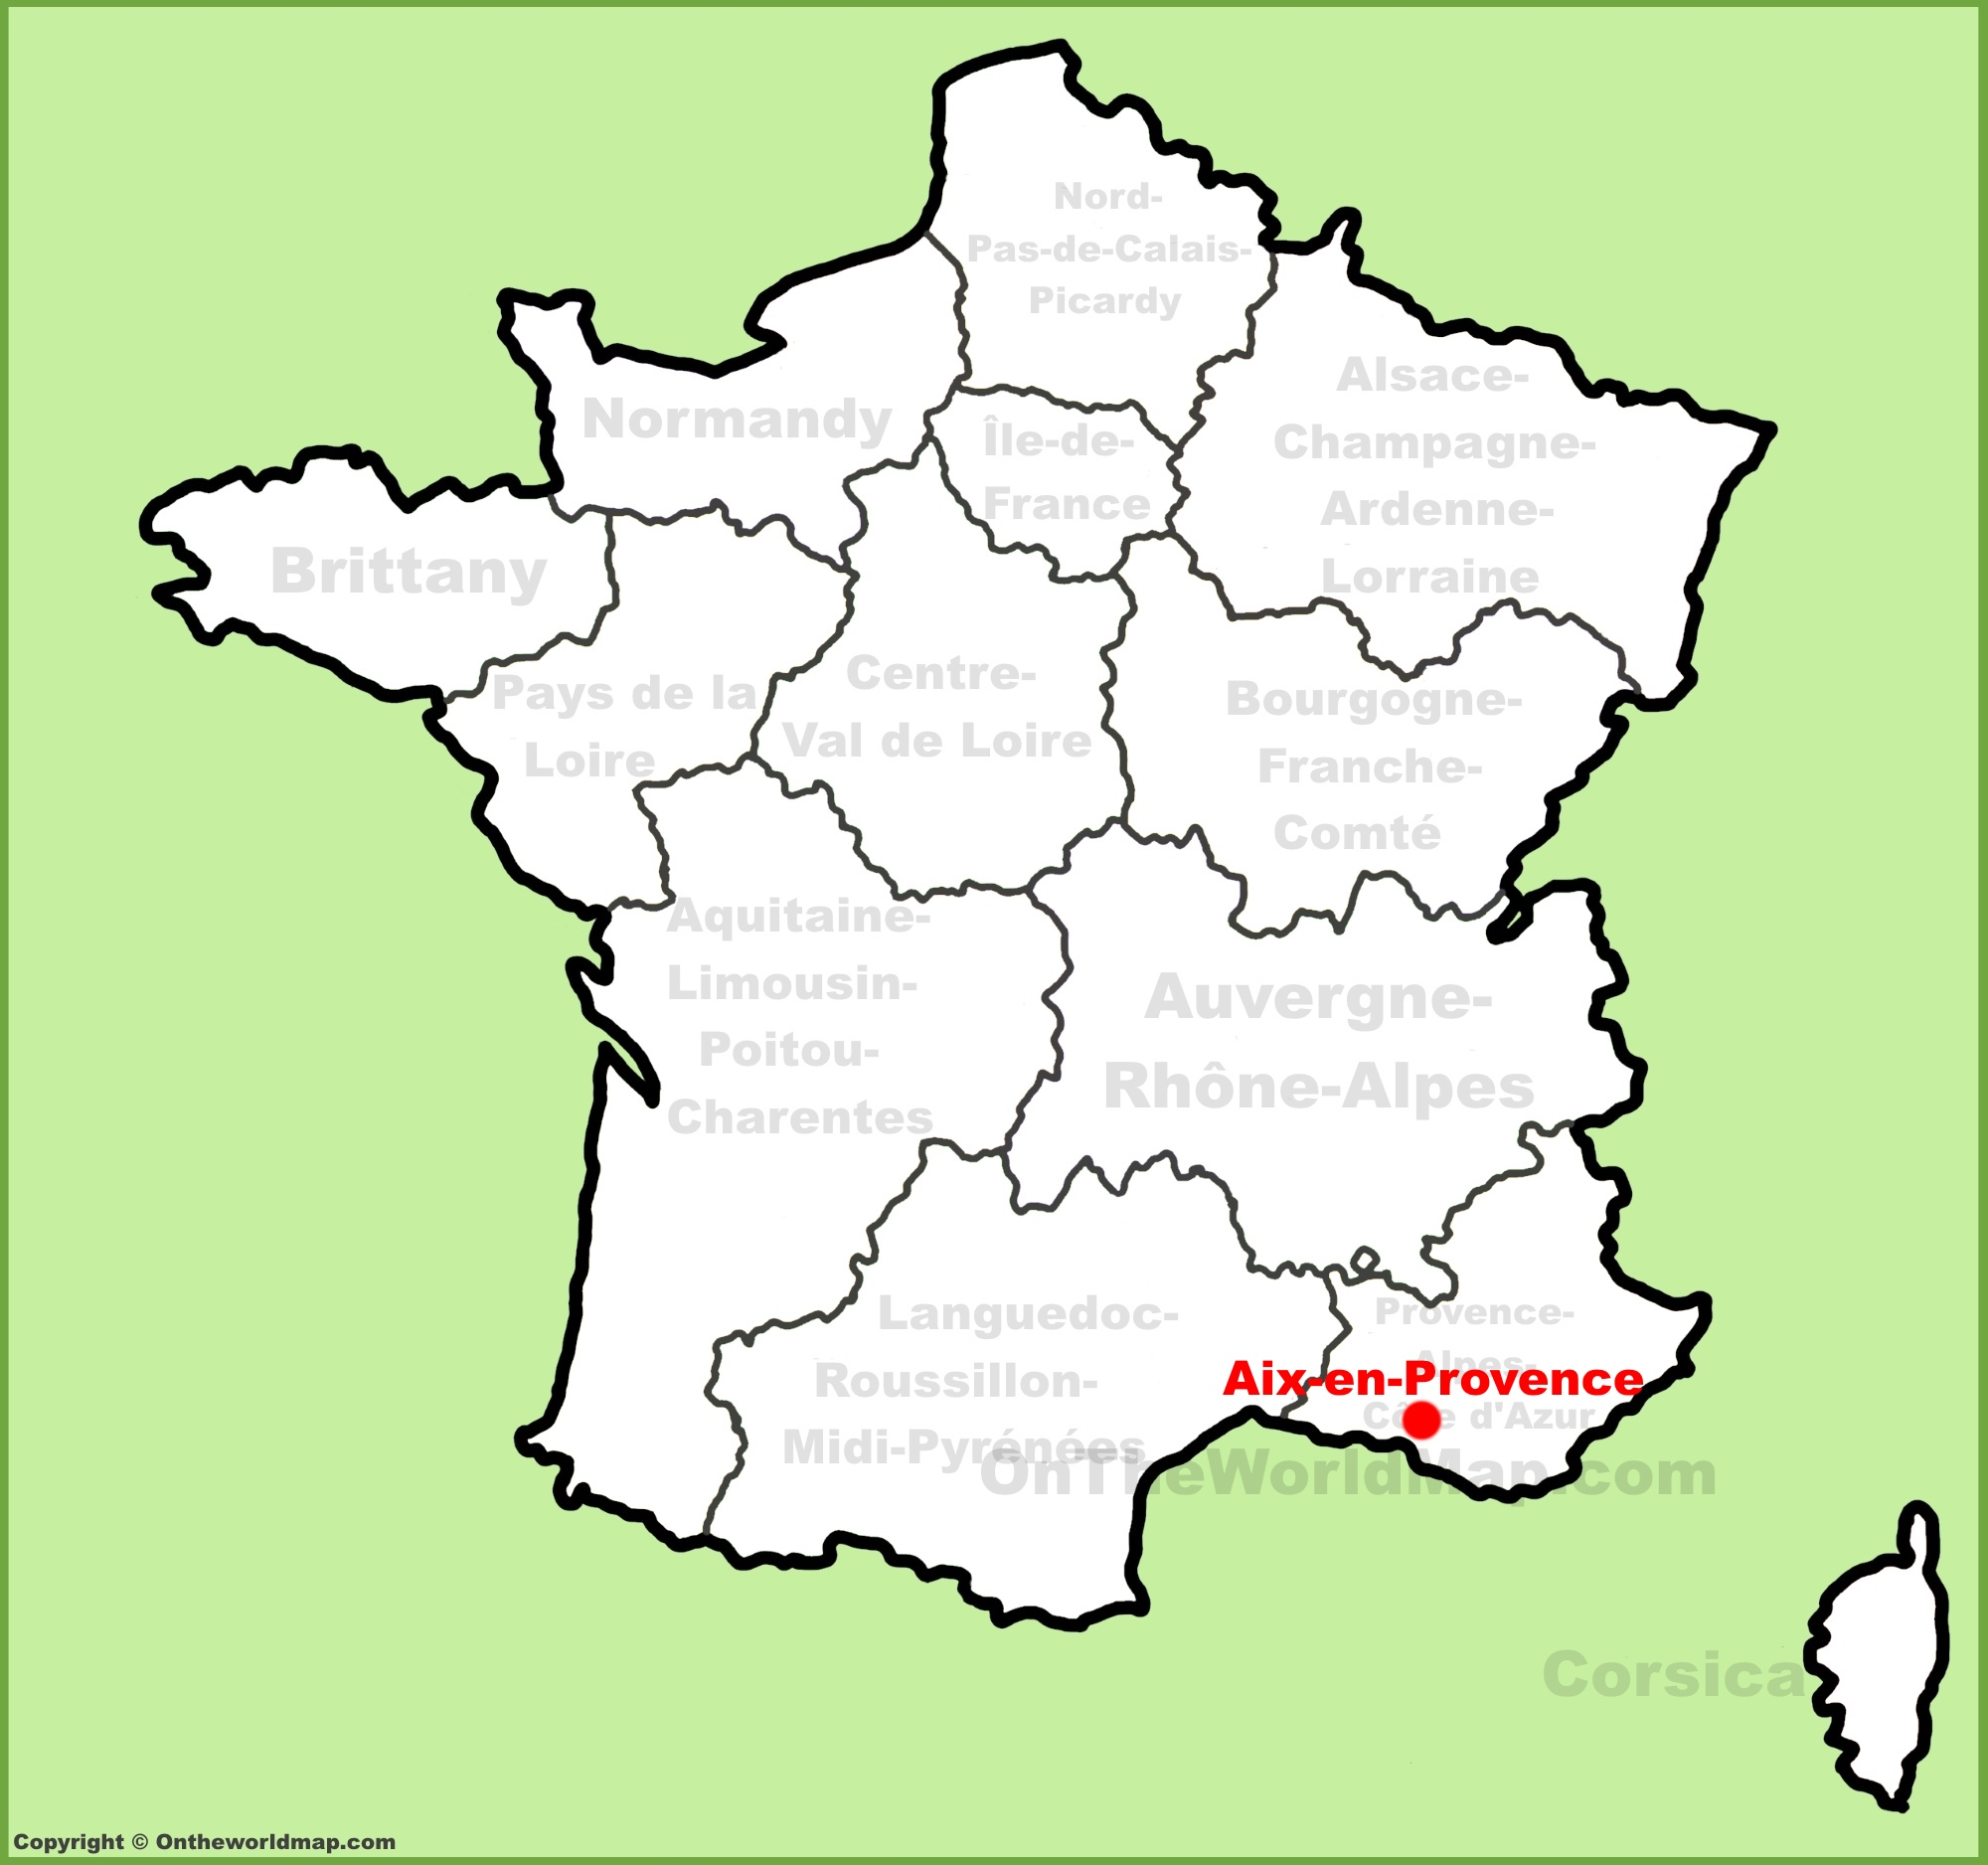 aix en provence location on the france map Maps Aix En Provence Maps Aix En Provence #9 map aix en provence